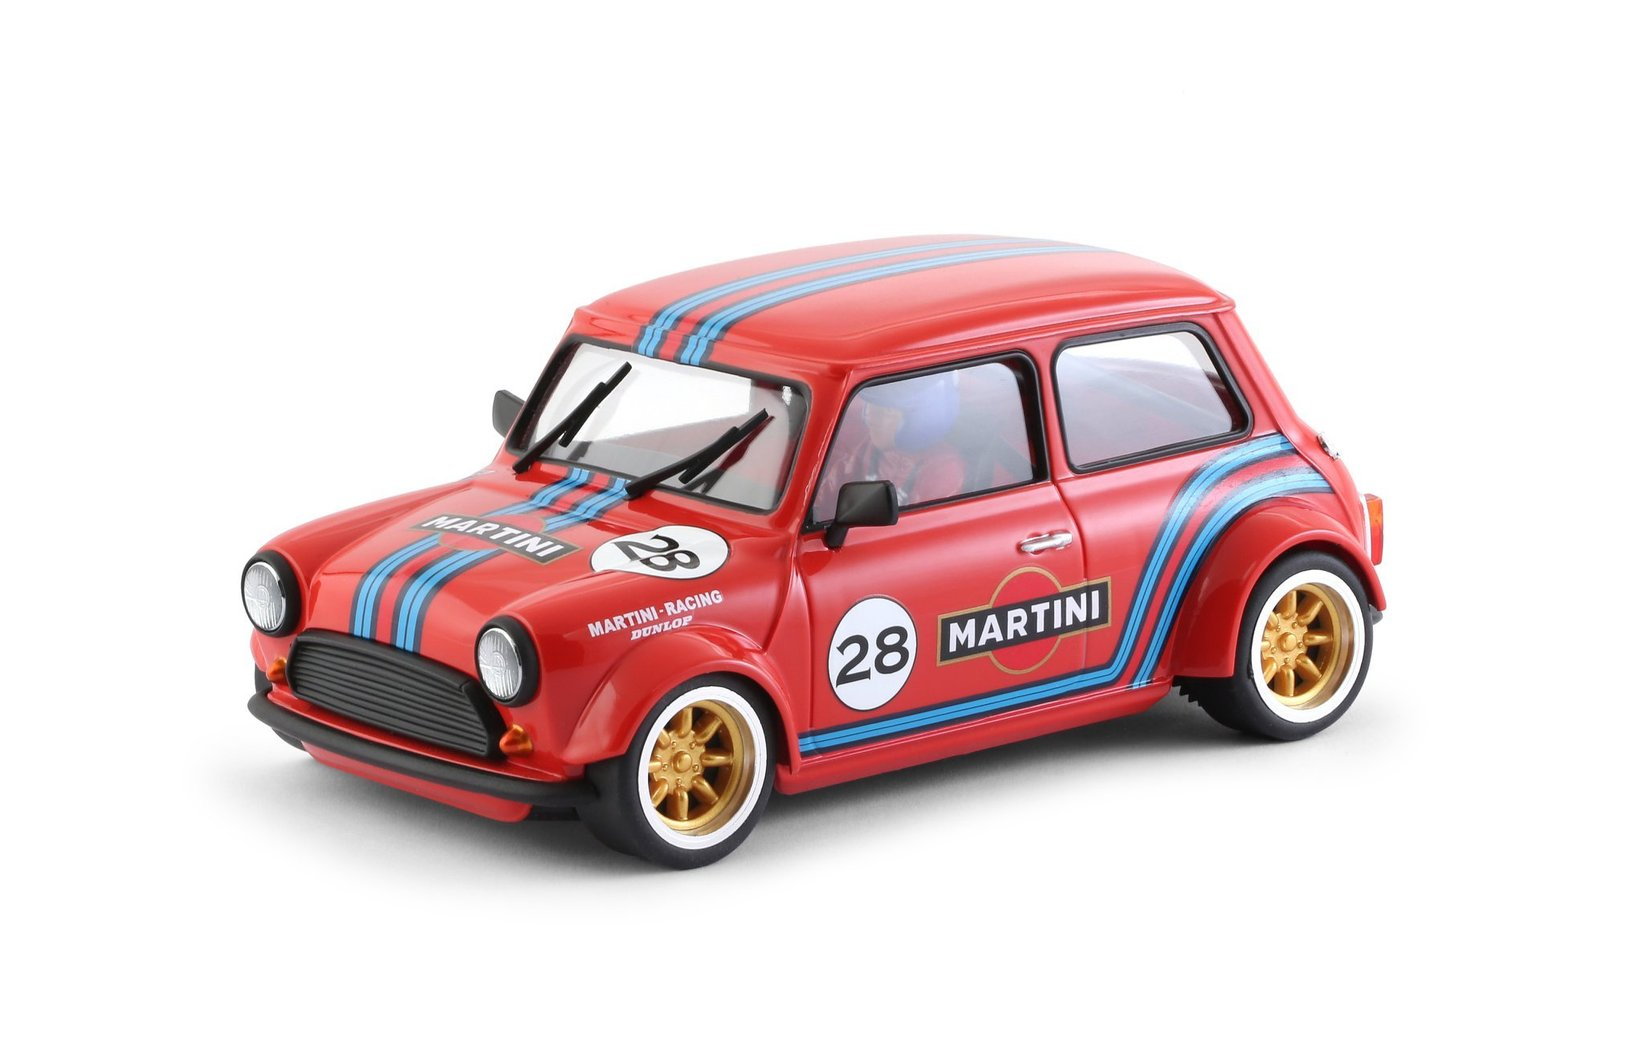 brm 090r brm mini cooper 28 red 1 24 slotcar zwerge. Black Bedroom Furniture Sets. Home Design Ideas